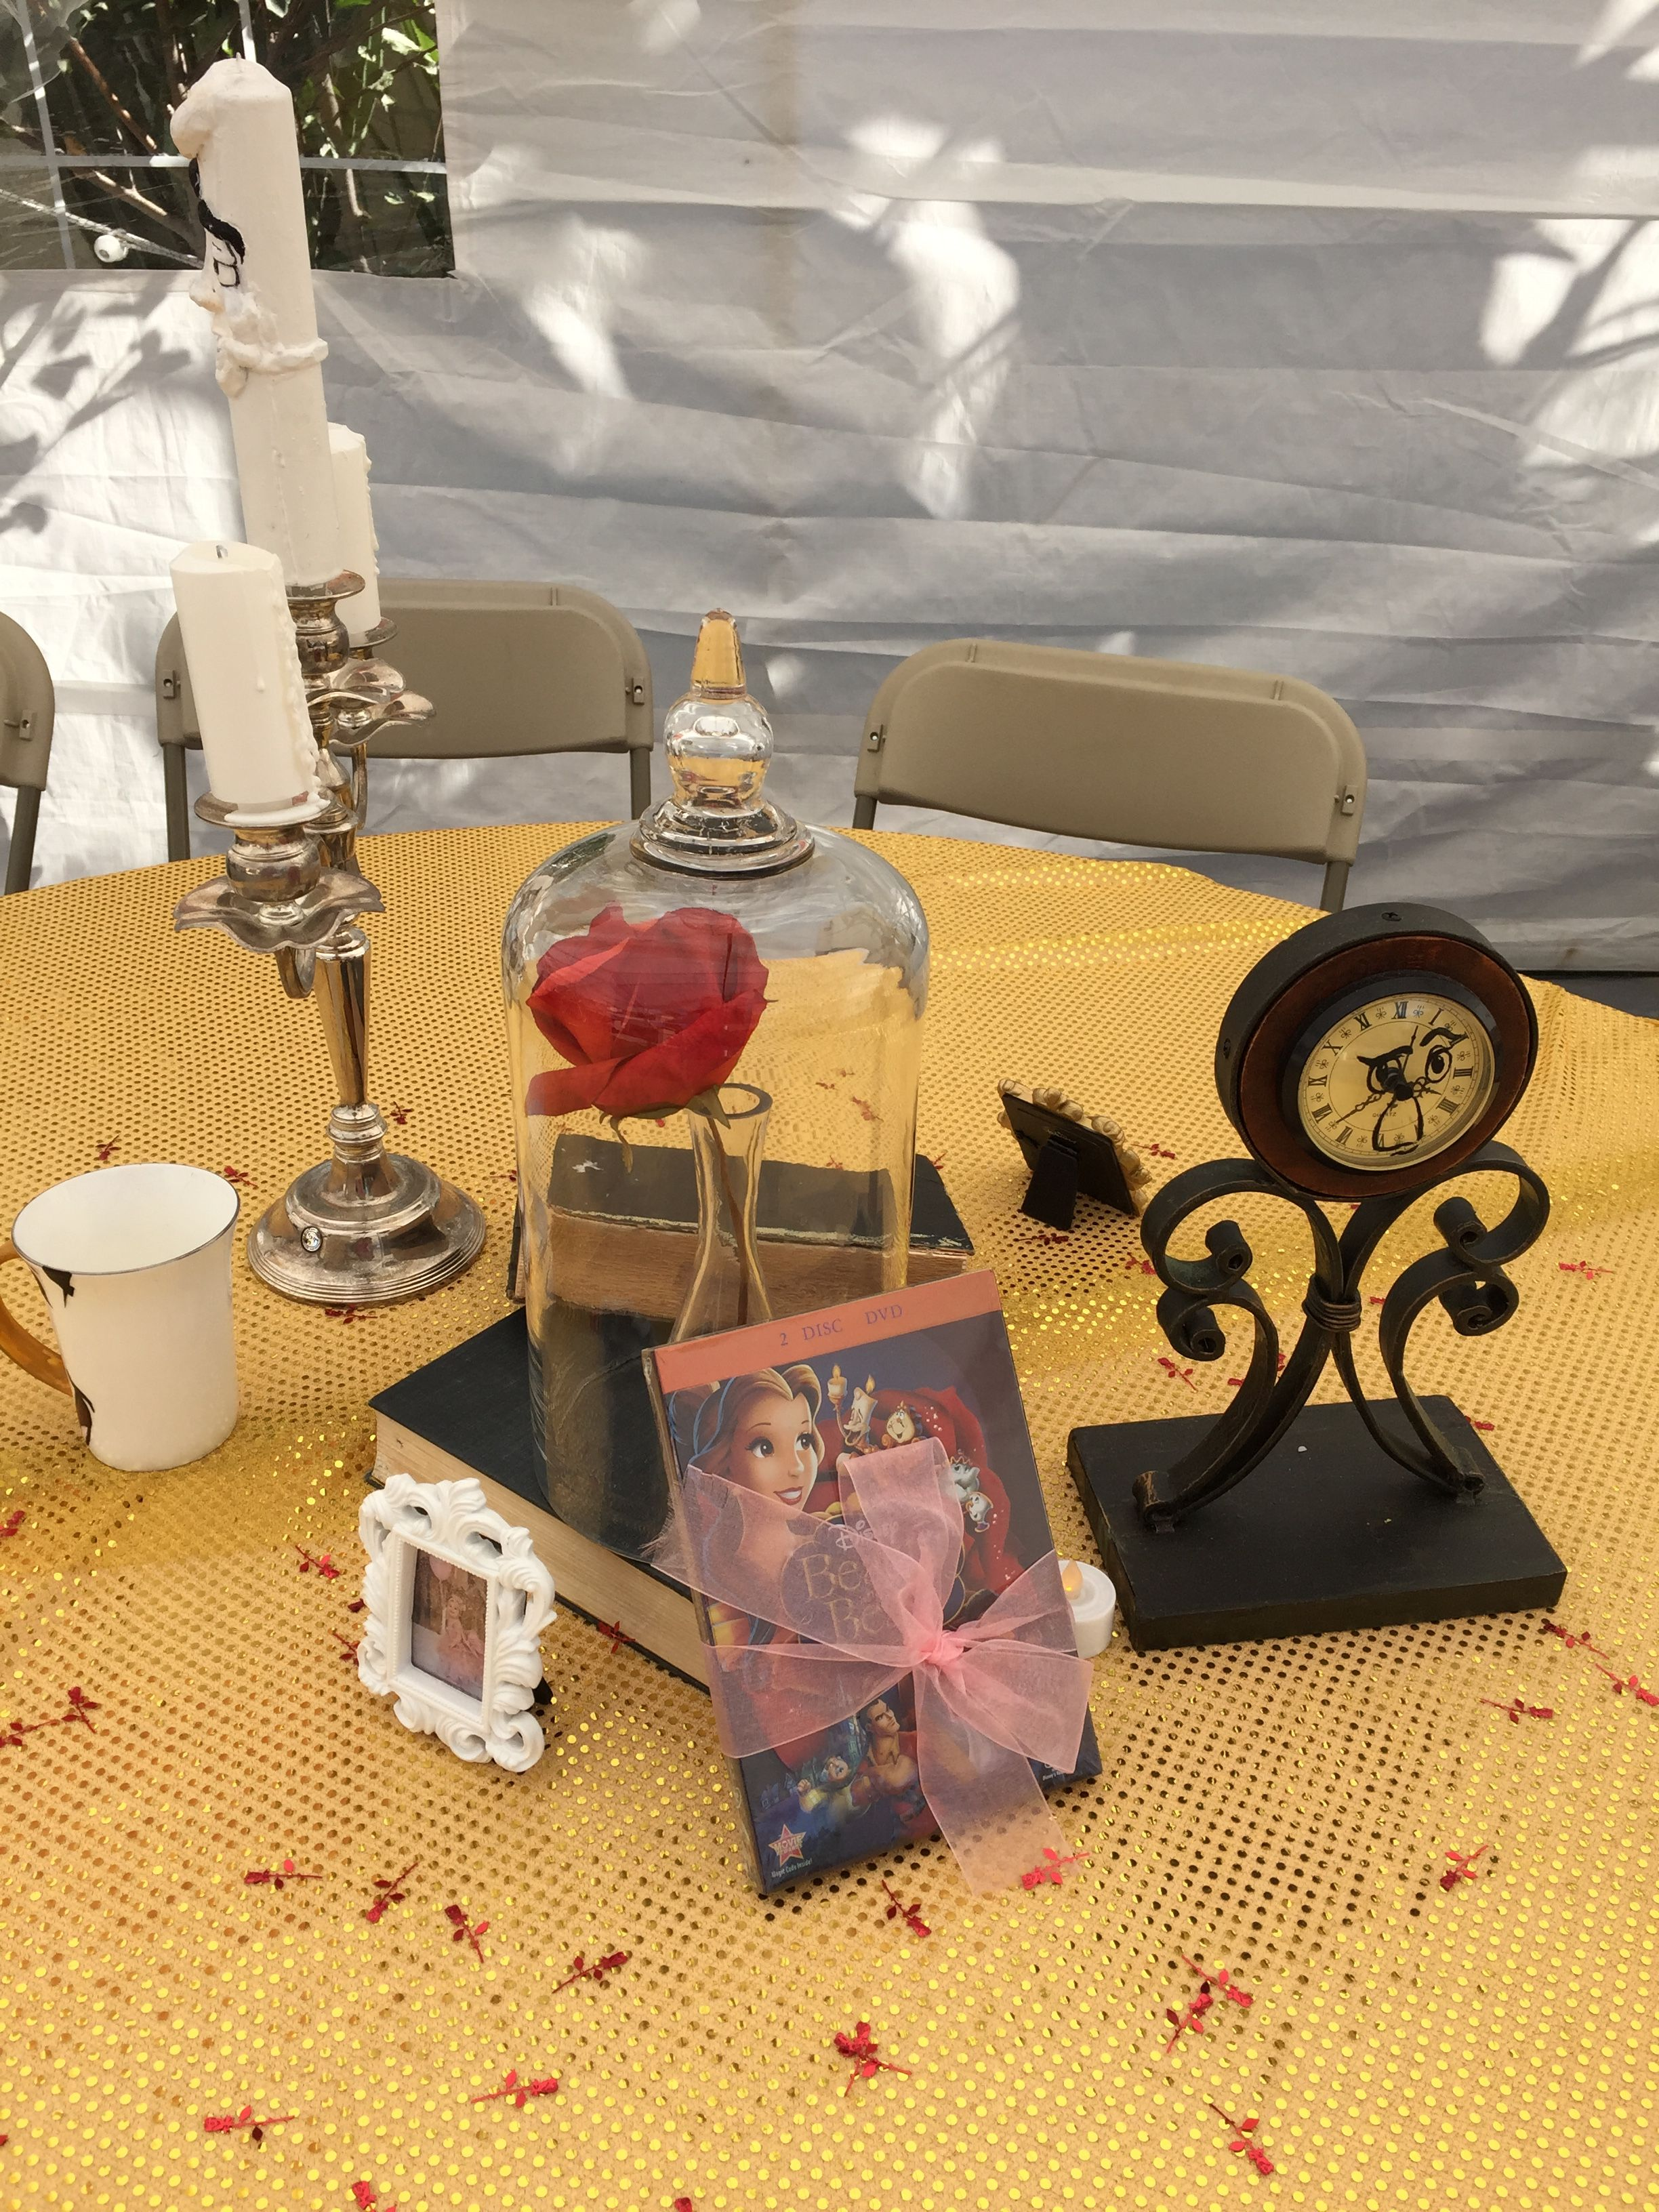 Beauty and the beast center piece do it yourself diy wedding beauty and the beast center piece do it yourself solutioingenieria Image collections